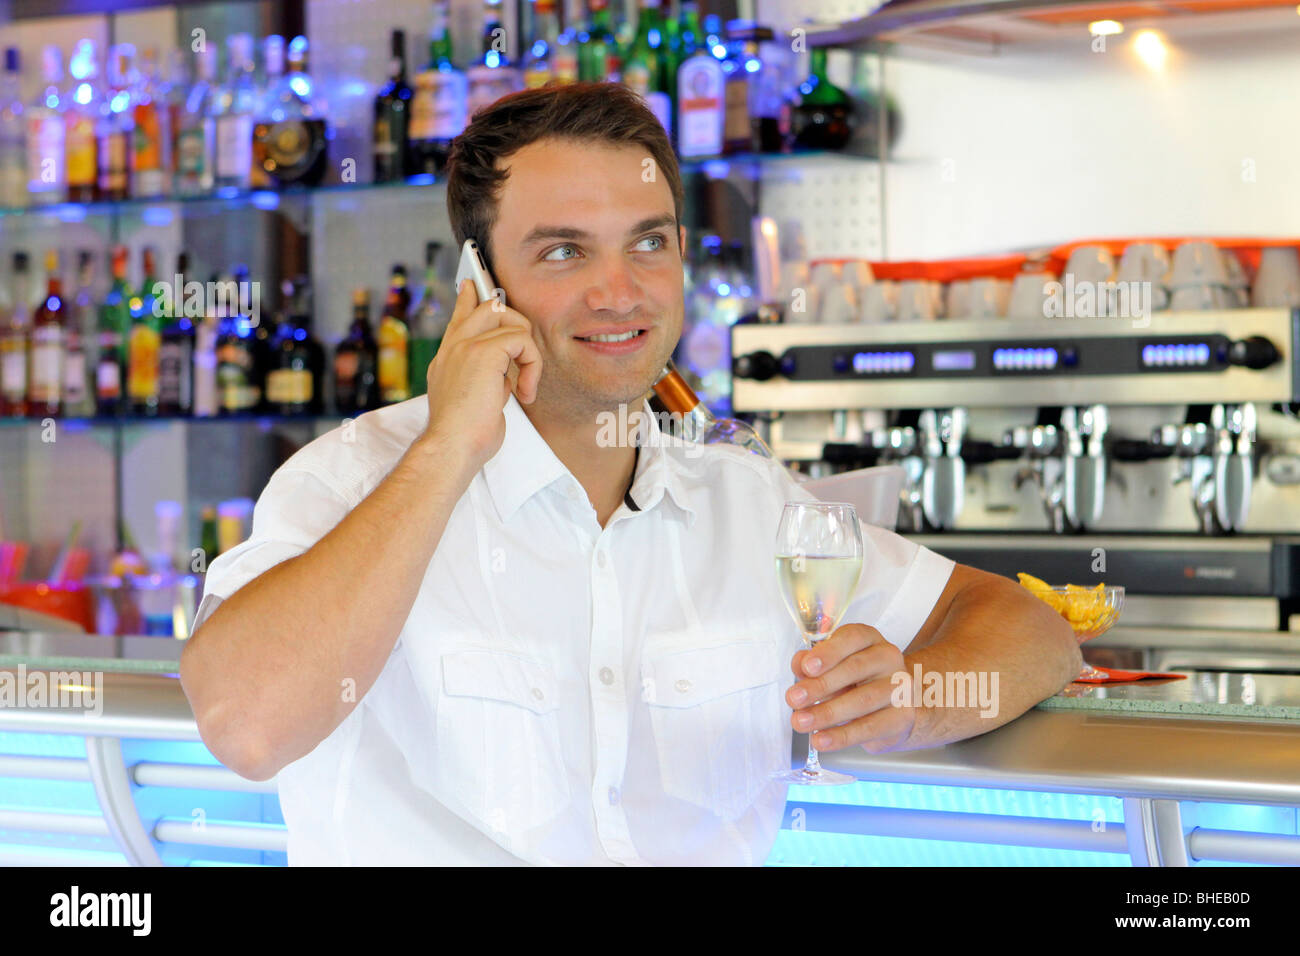 Young man with a cell phone at the bar - Stock Image